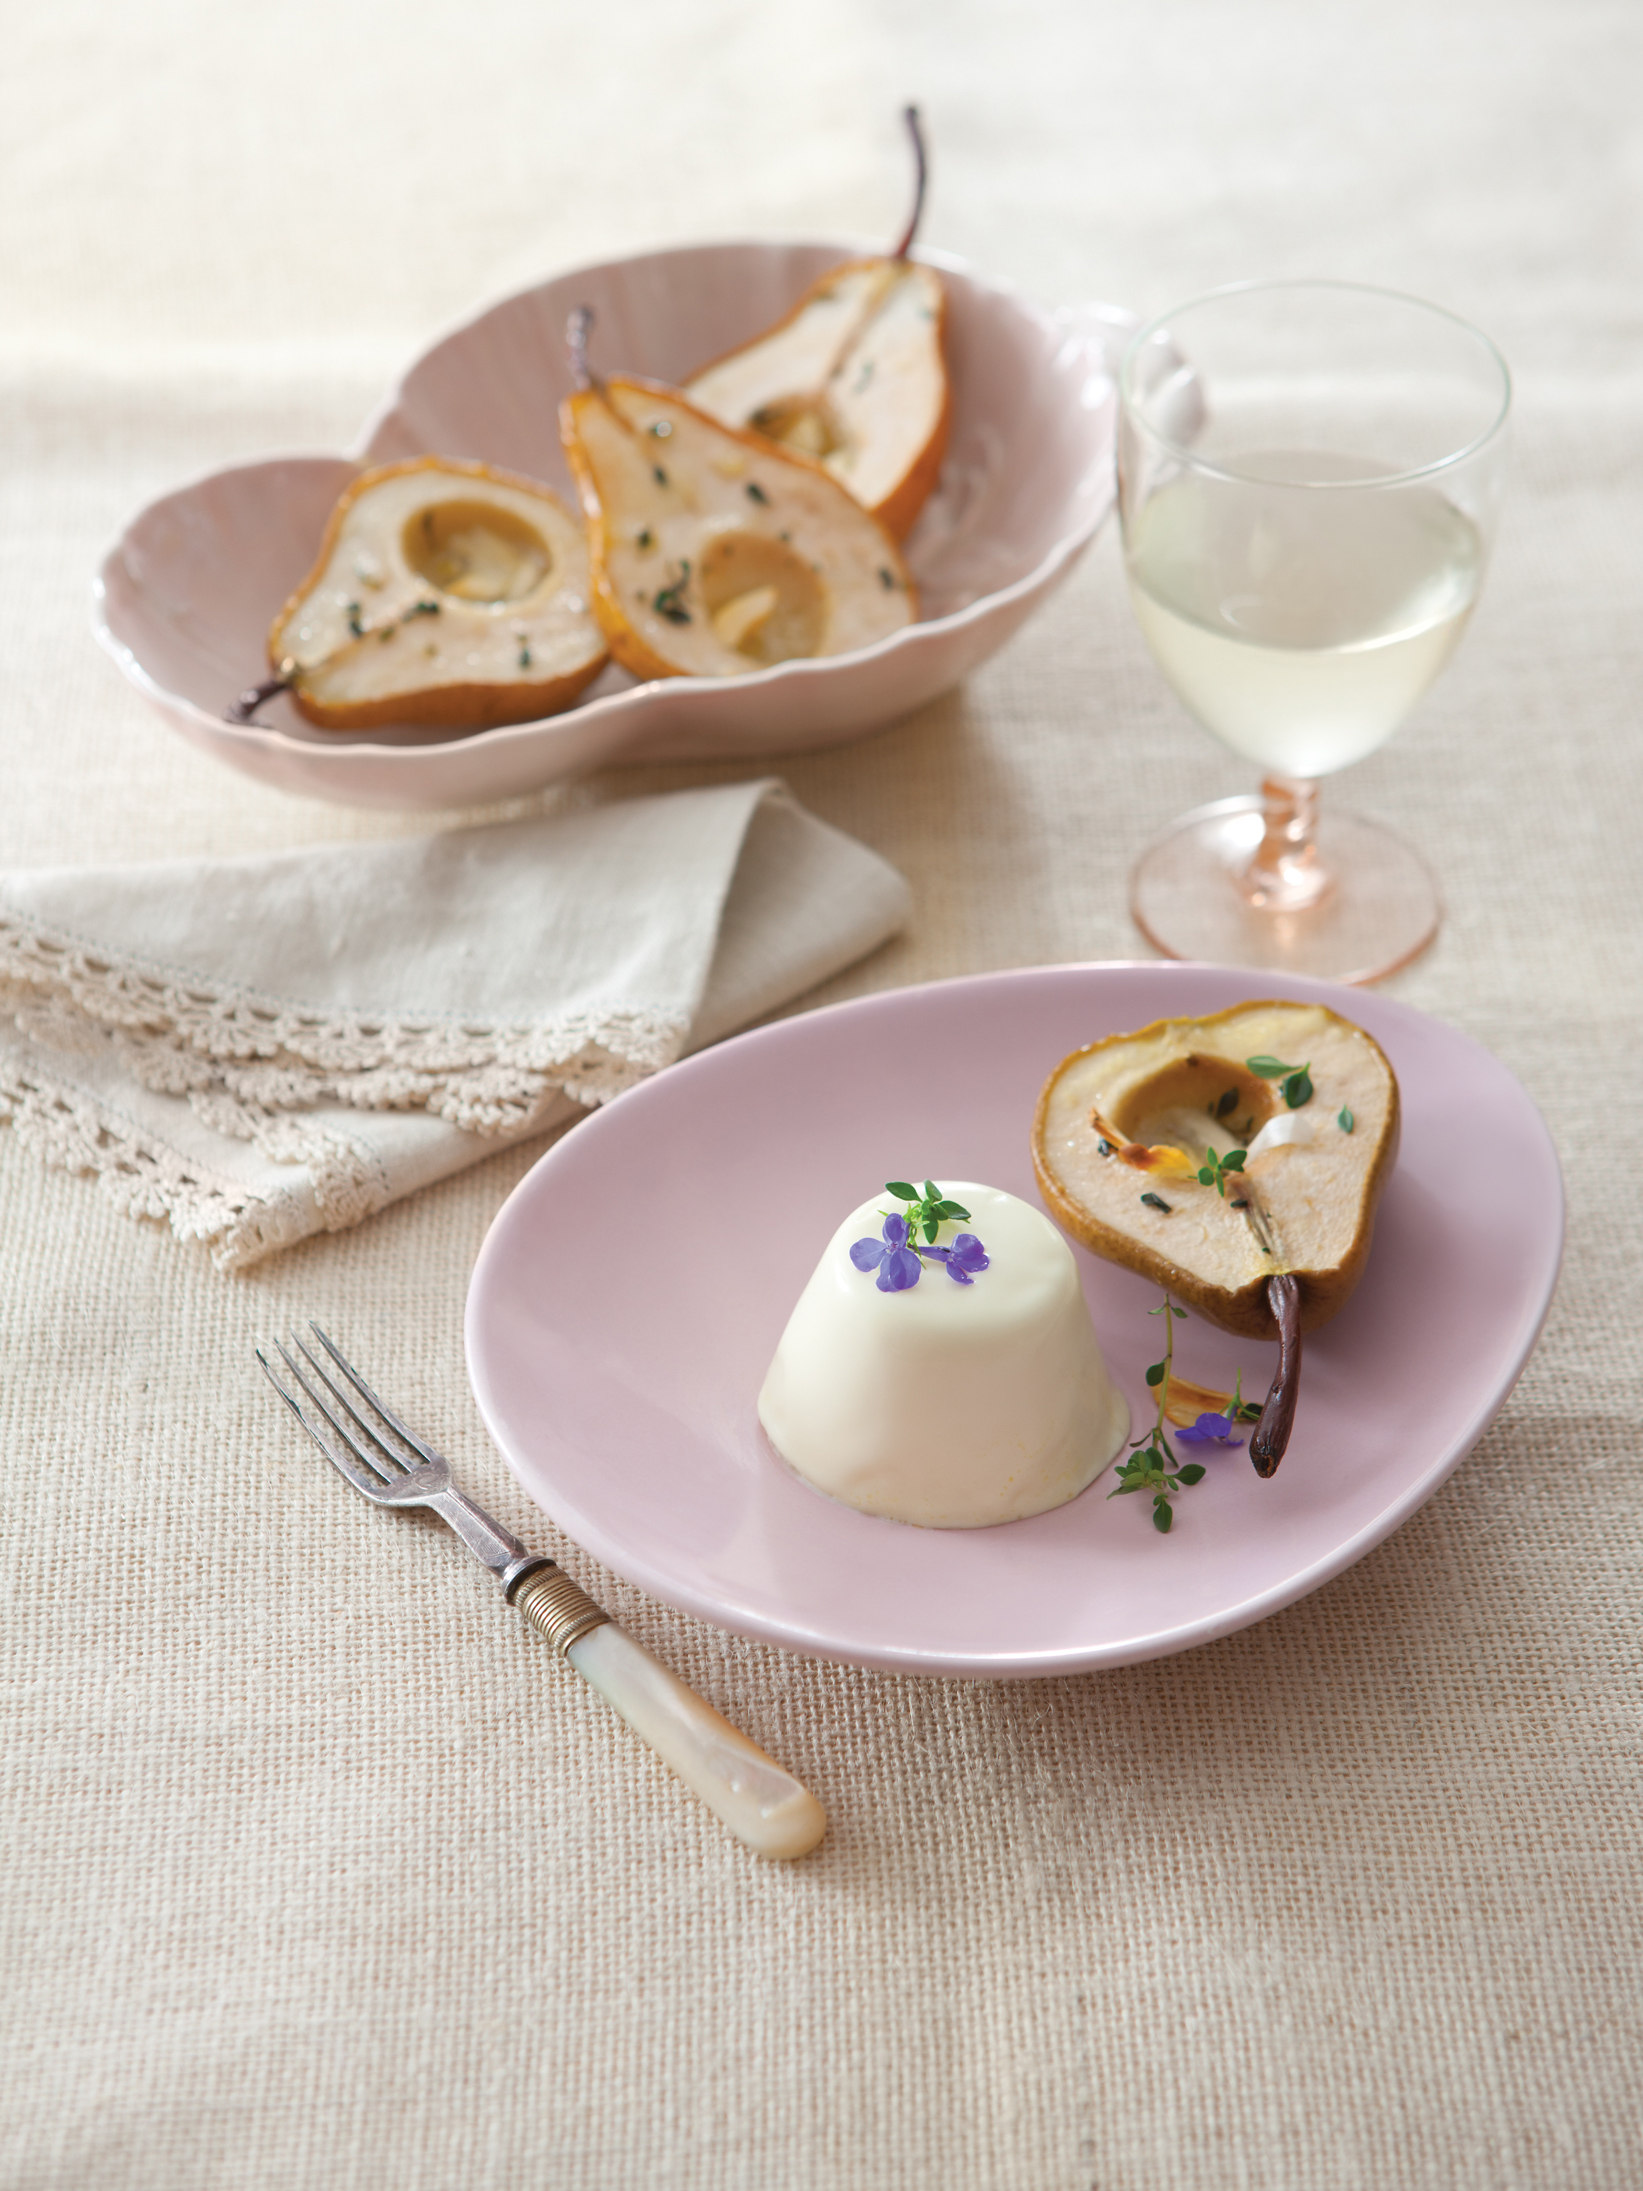 Goat Cheese Pannacotta with Roasted Pear